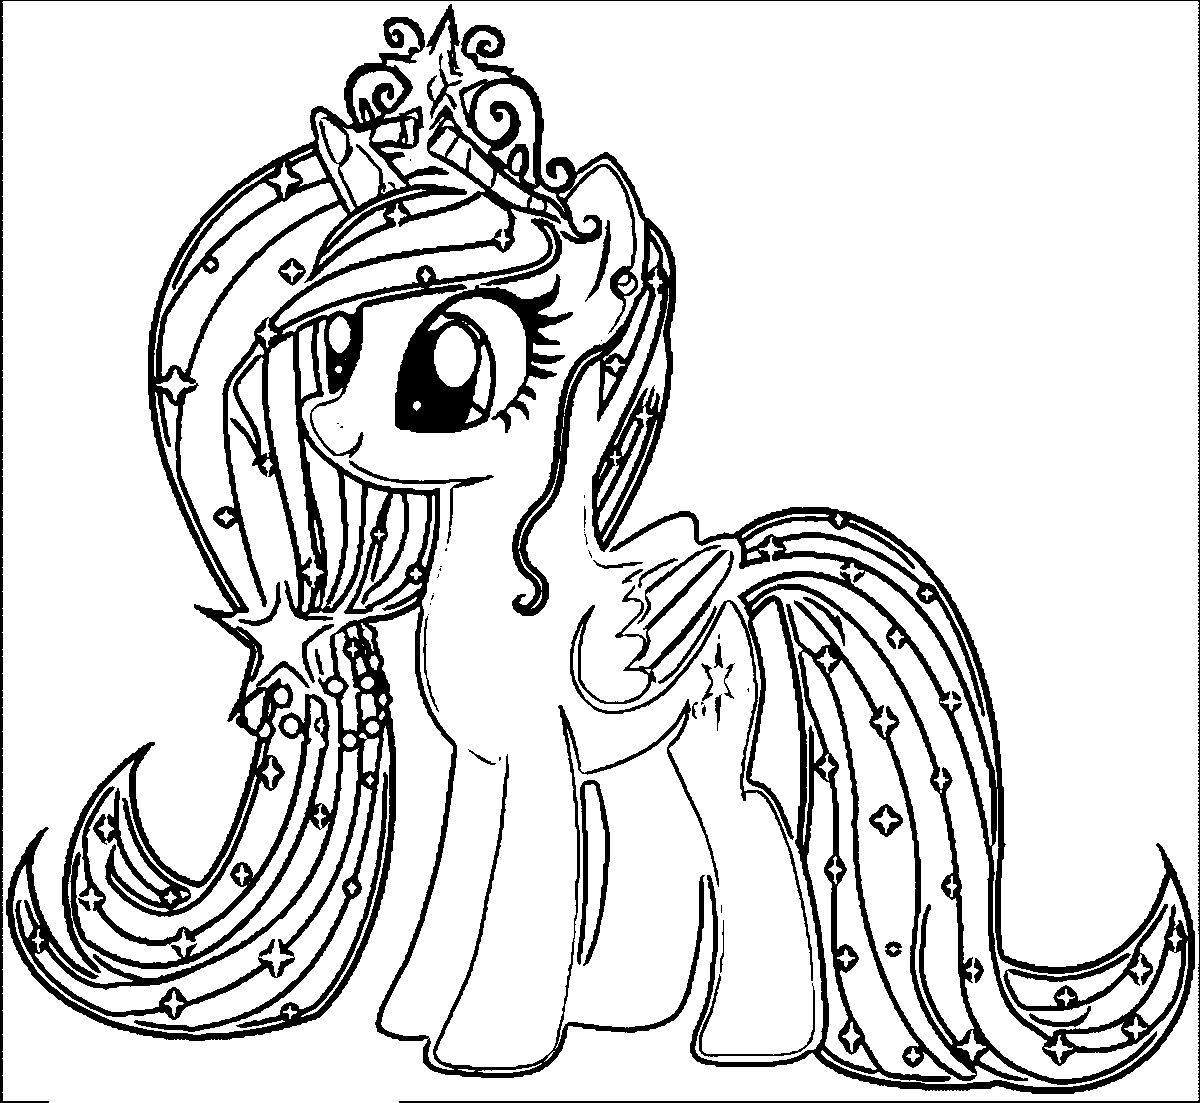 coloring pages of ponies my little pony coloring pages coloring pages with ponies pages coloring ponies of